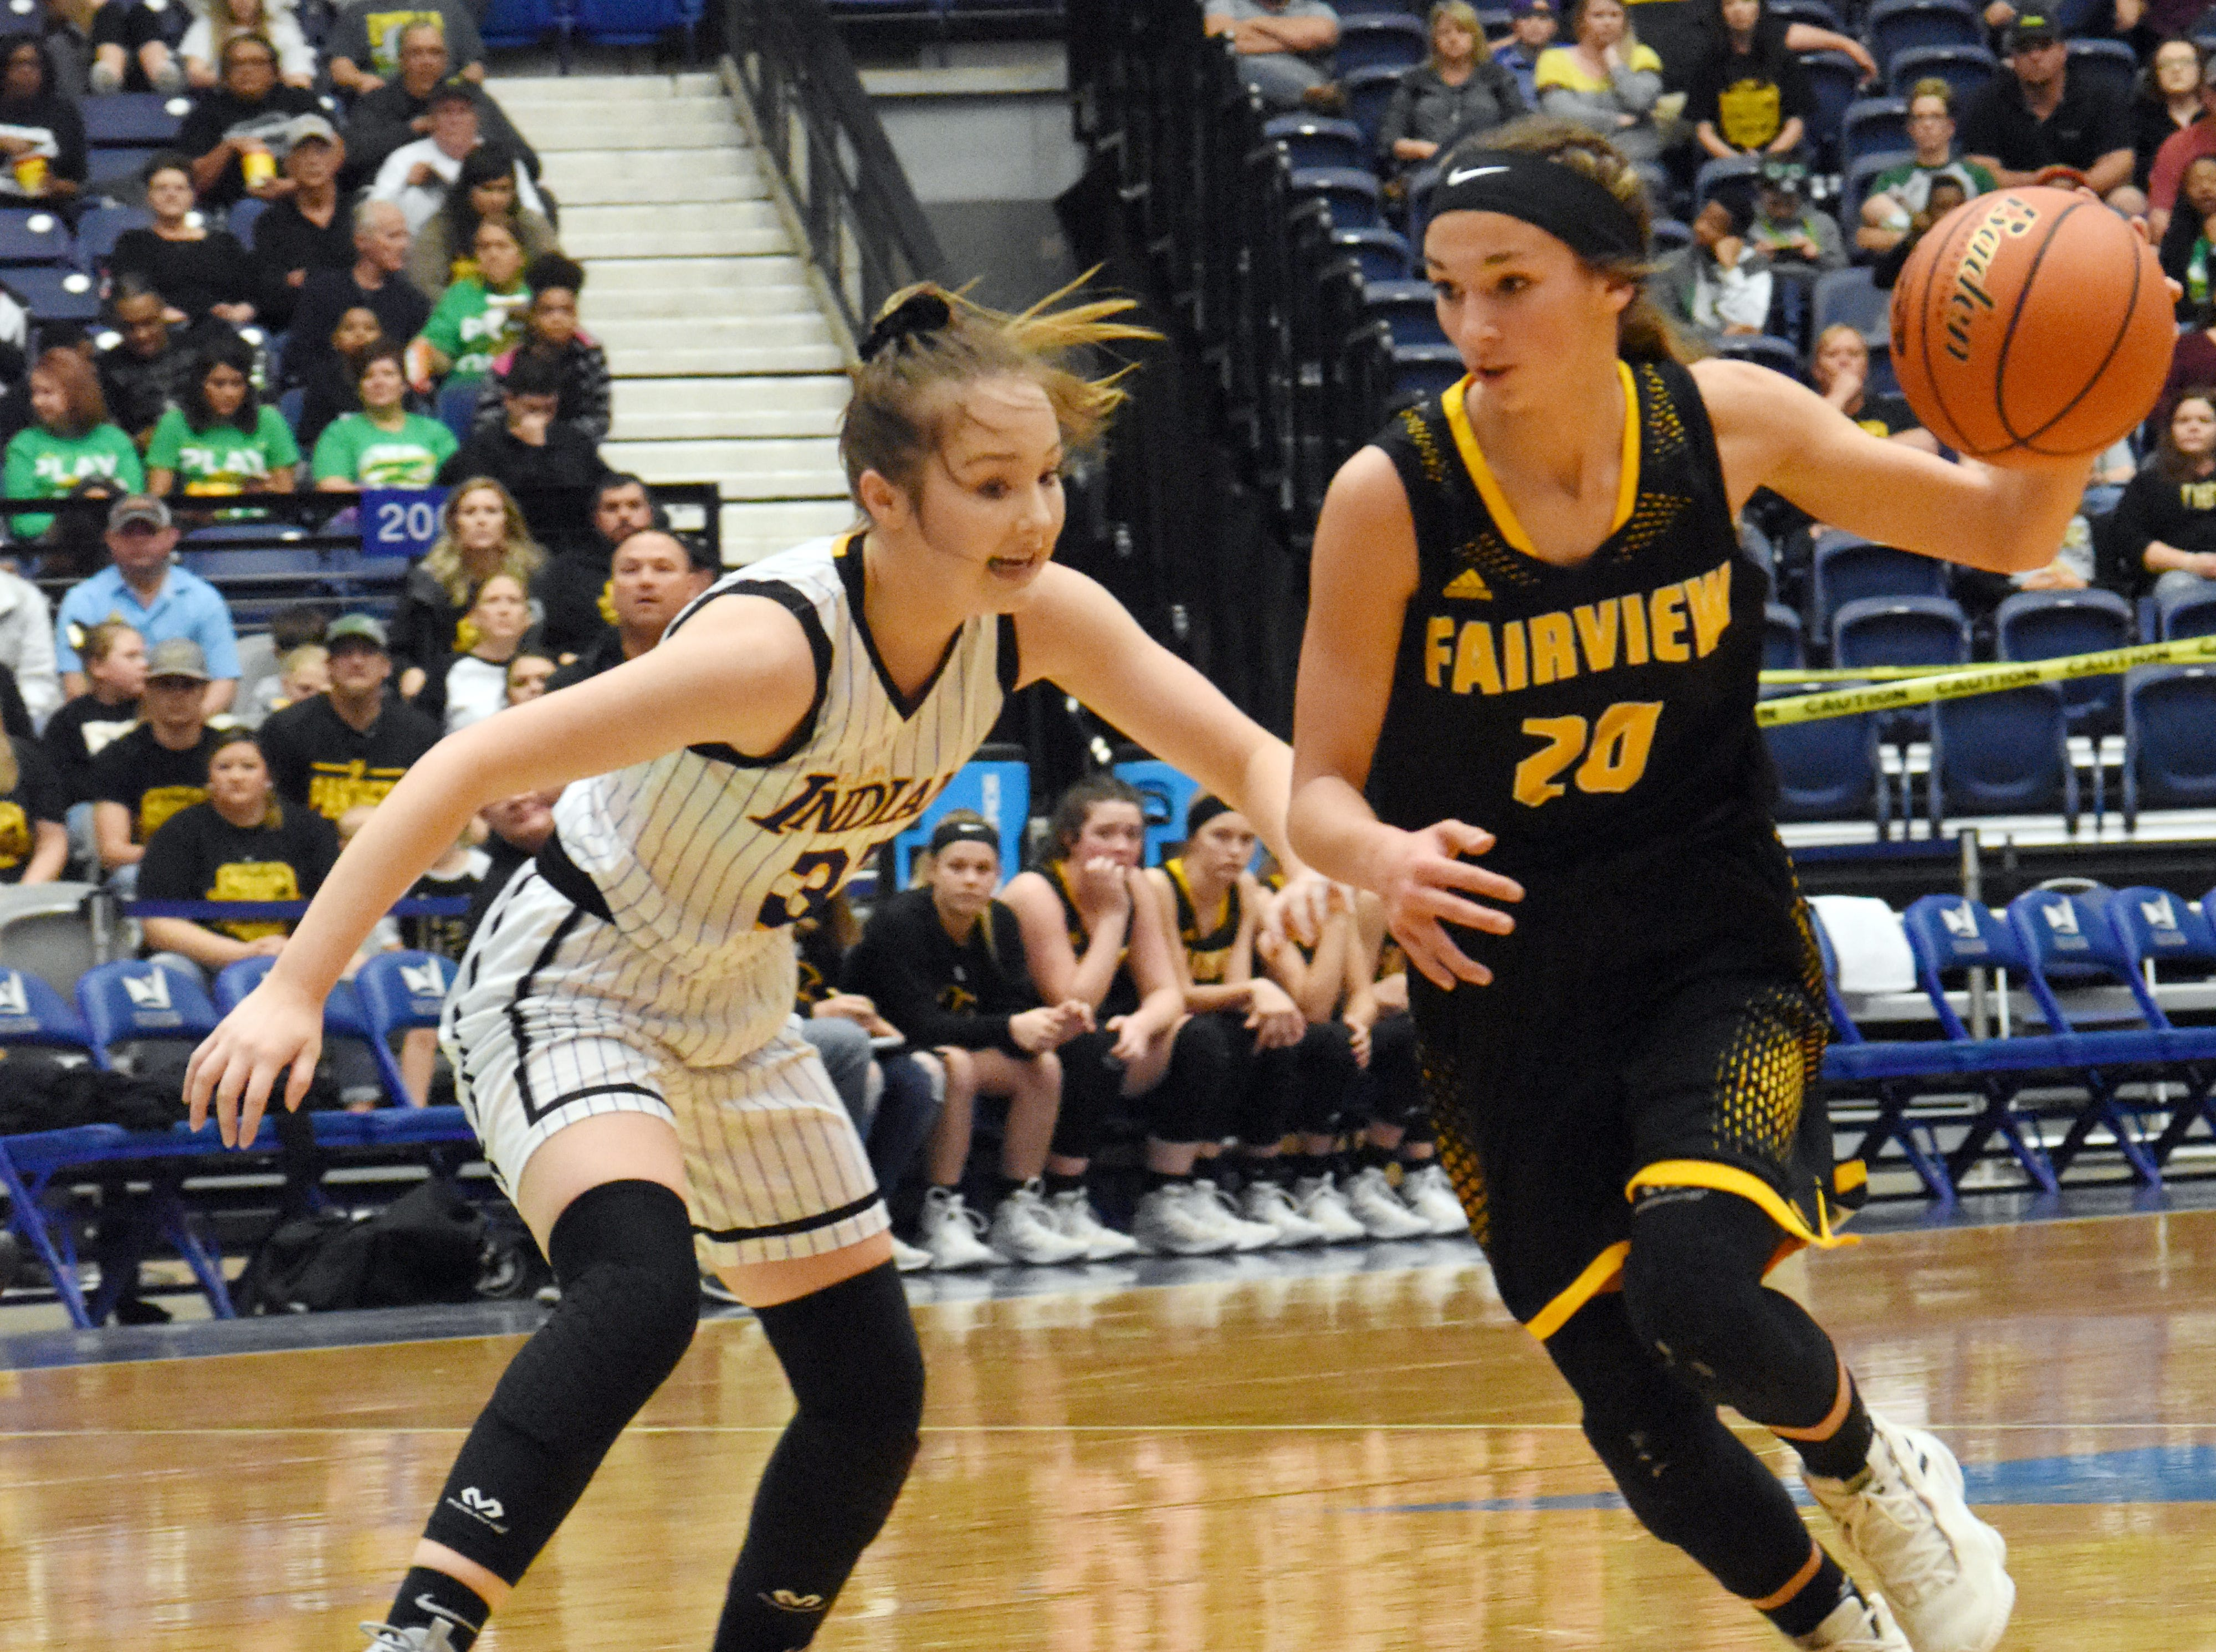 Anacoco's Kayley Procell (33, left) guards  Fairview's Ryleee Jinks in the semifinals of the Class B 2019 Allstate Sugar Bowl LHSAA girls' State Basketball Marsh Madness Tournament held Wednesday, Feb. 27, 2019 at the Rapides Parish Coliseum. Anacoco advances to the state championship tournament against Hicks High School.